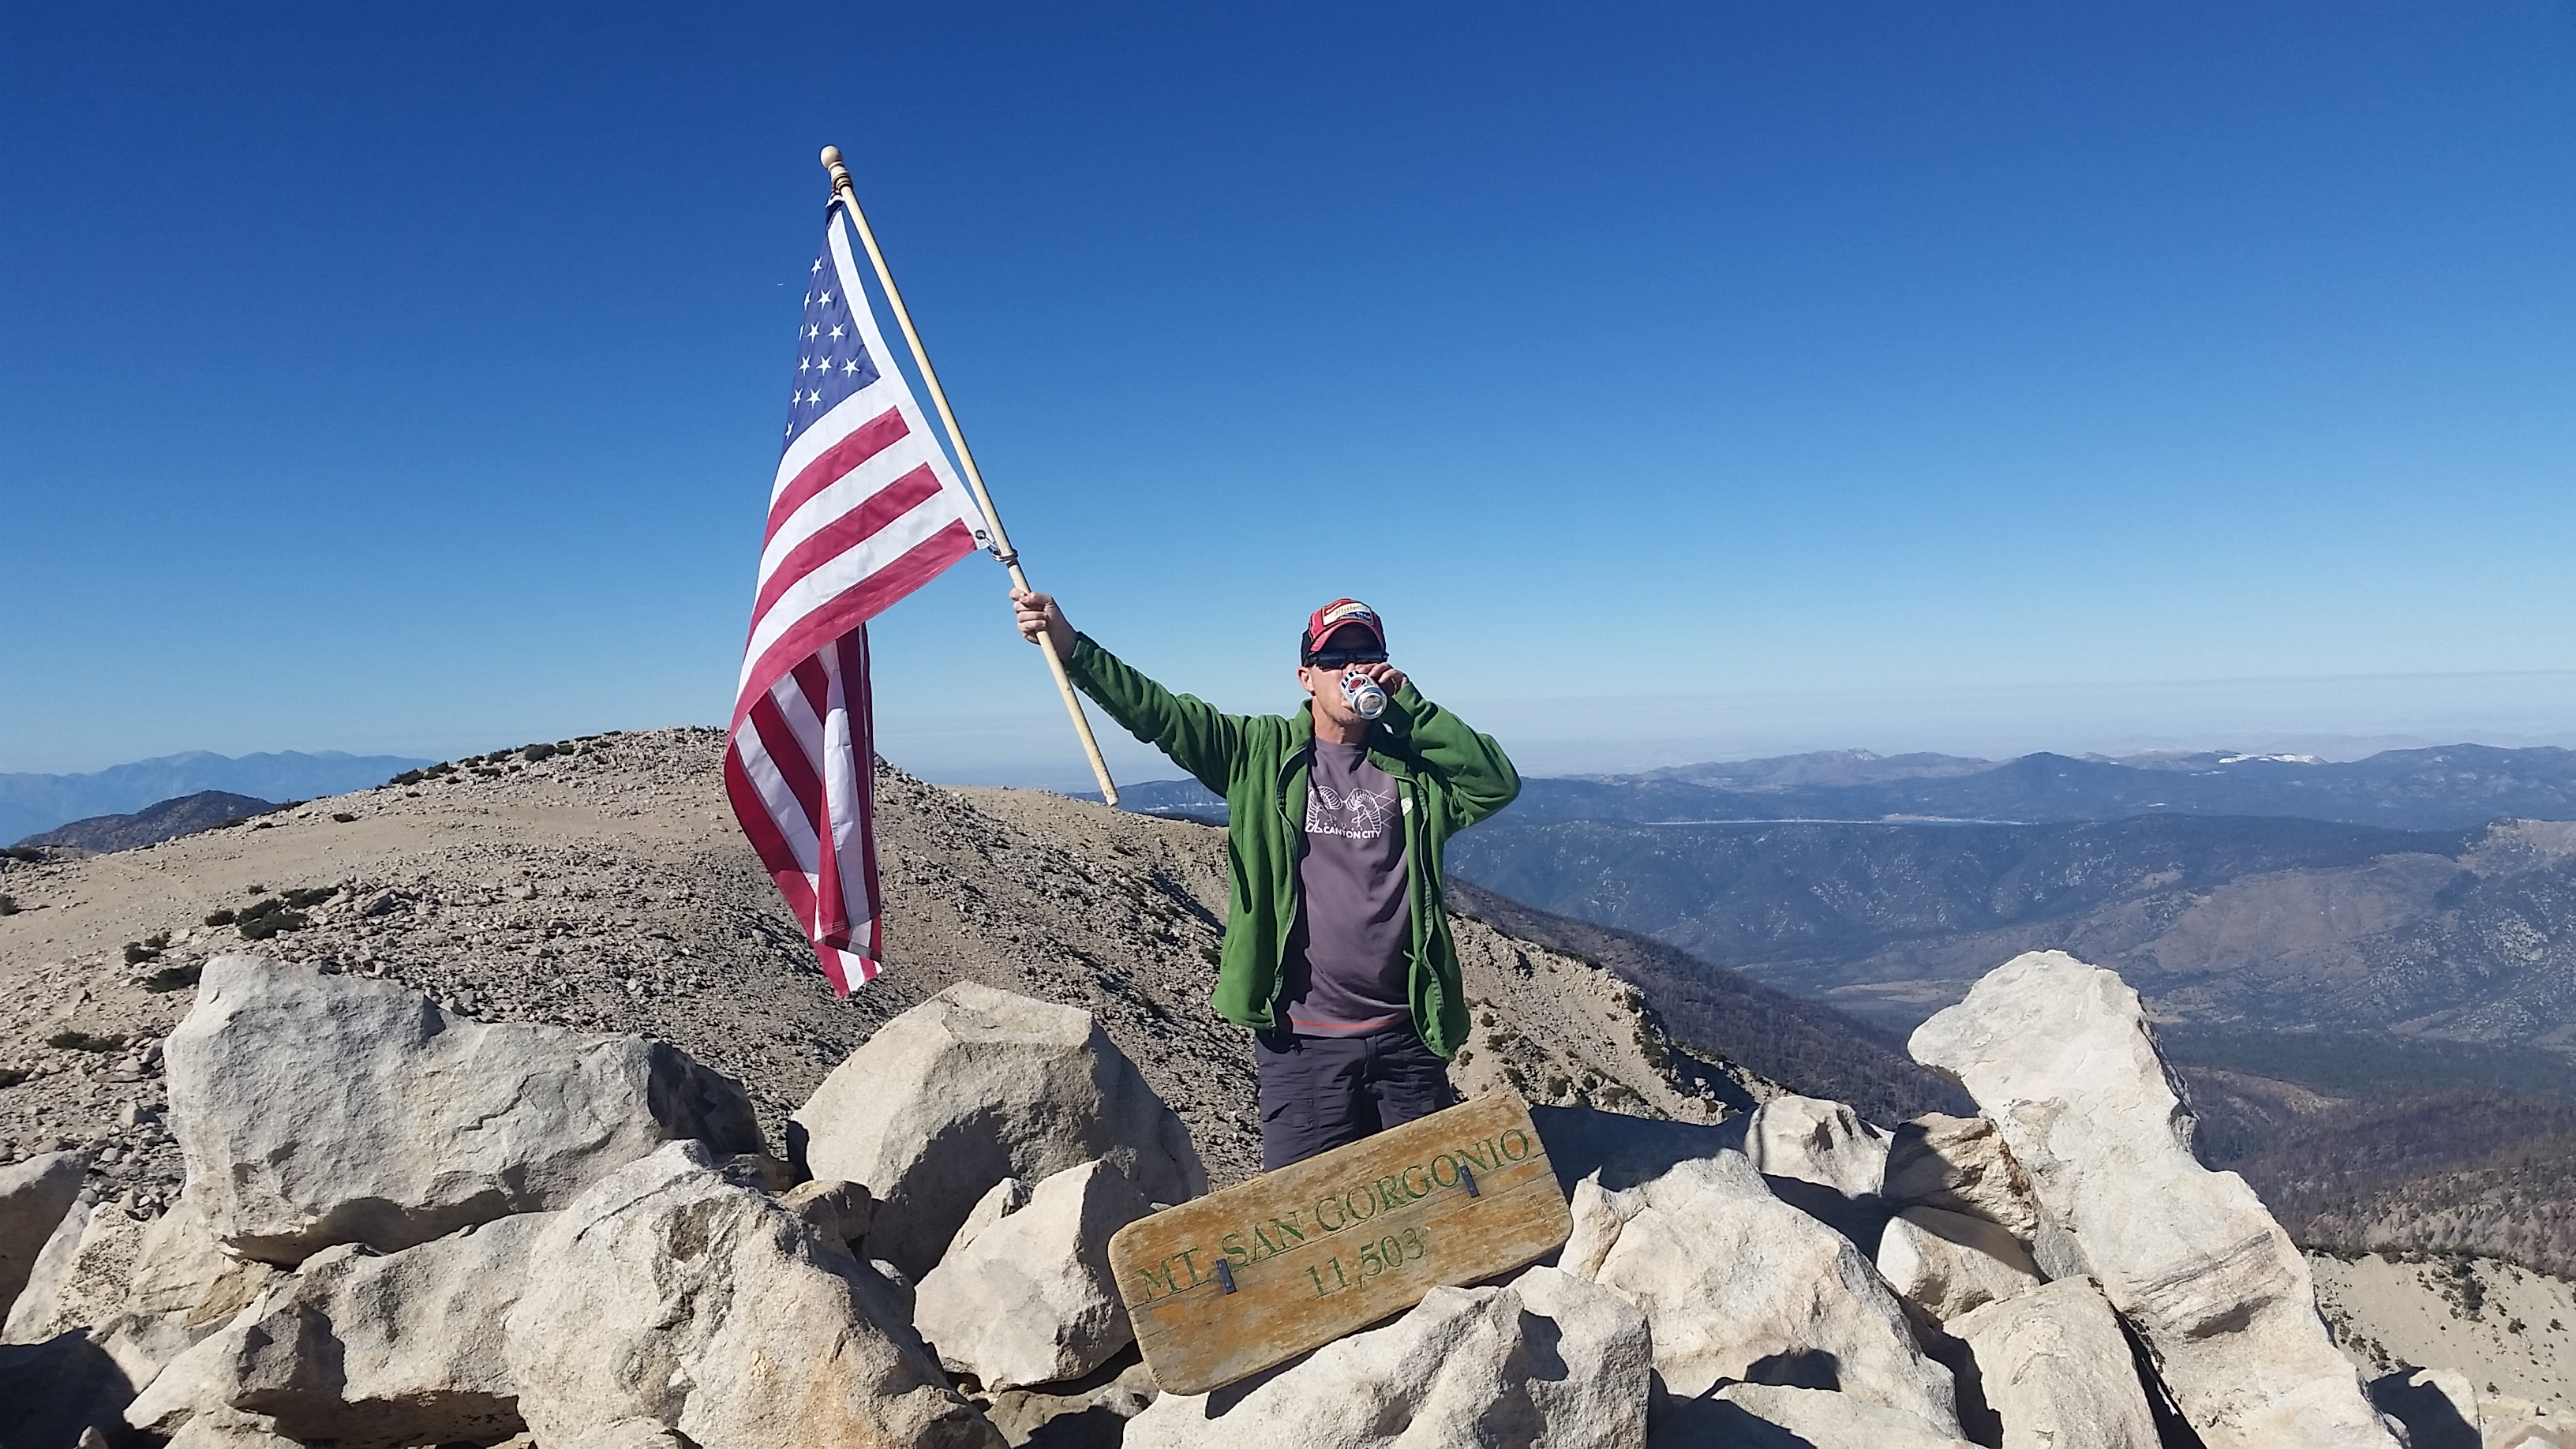 Image of Bryan Wells celebrating a successful climb to mountain top (with Miller Lite in hand)